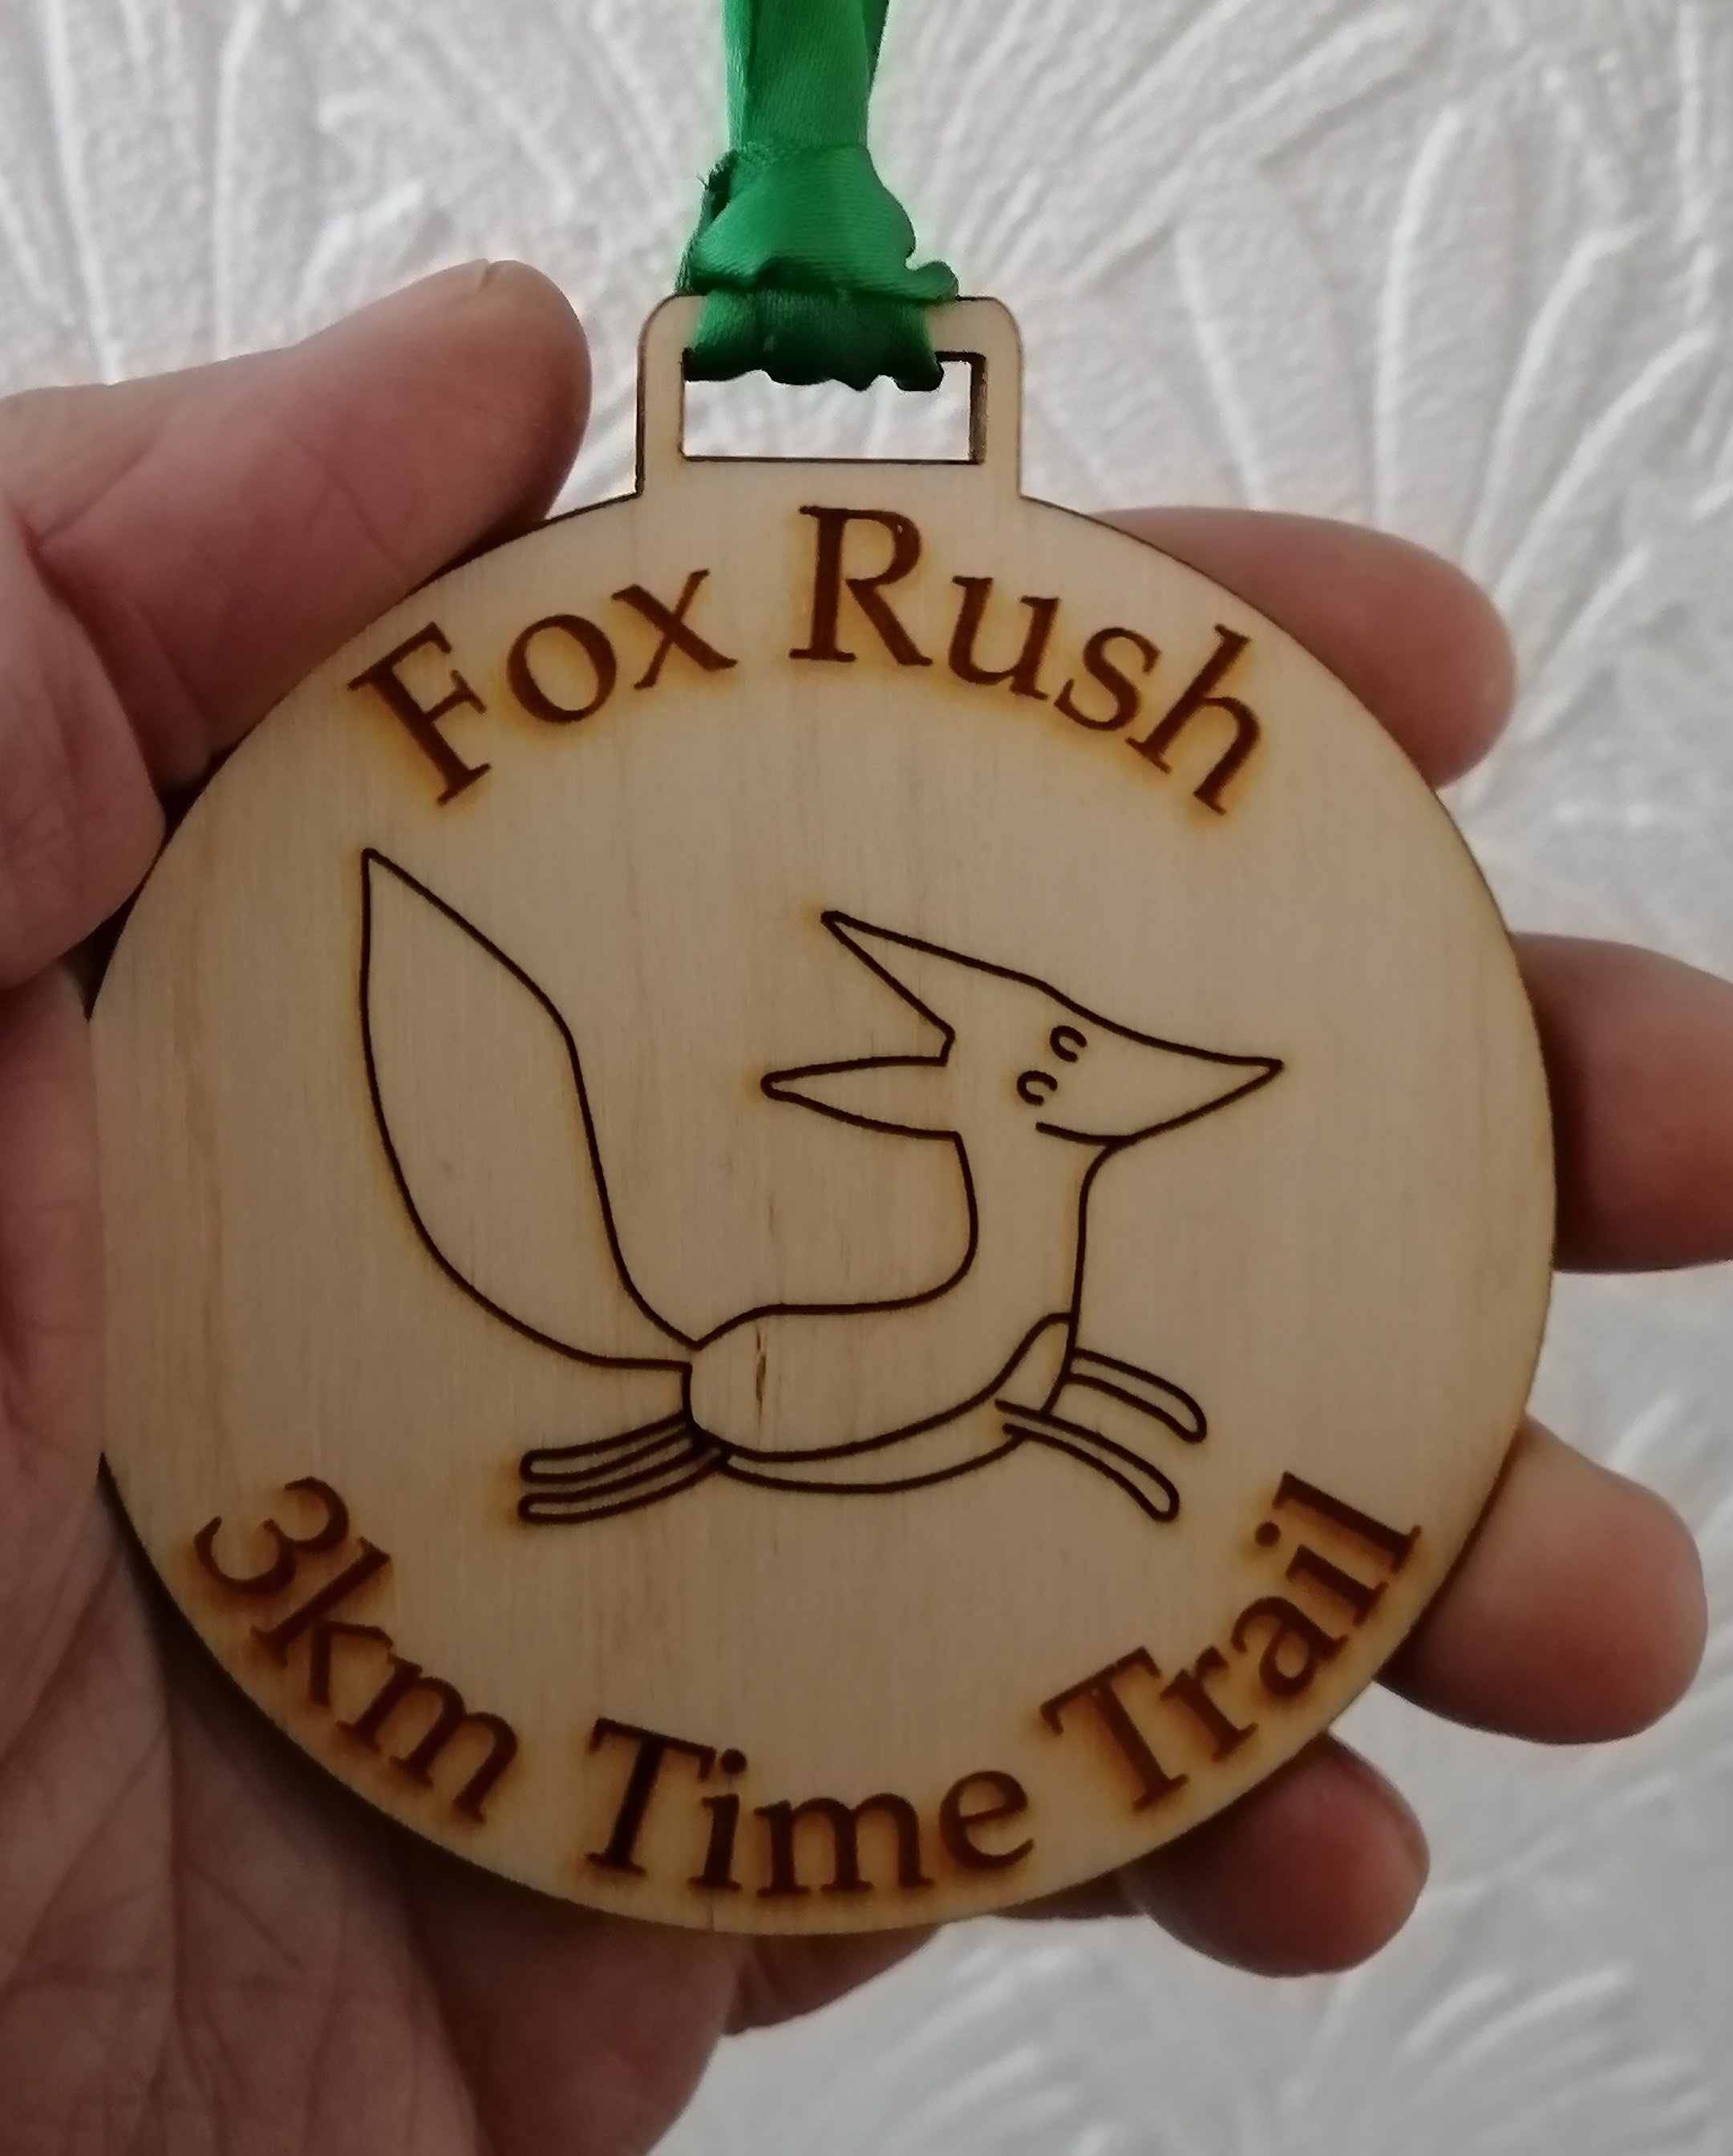 fox rush medal